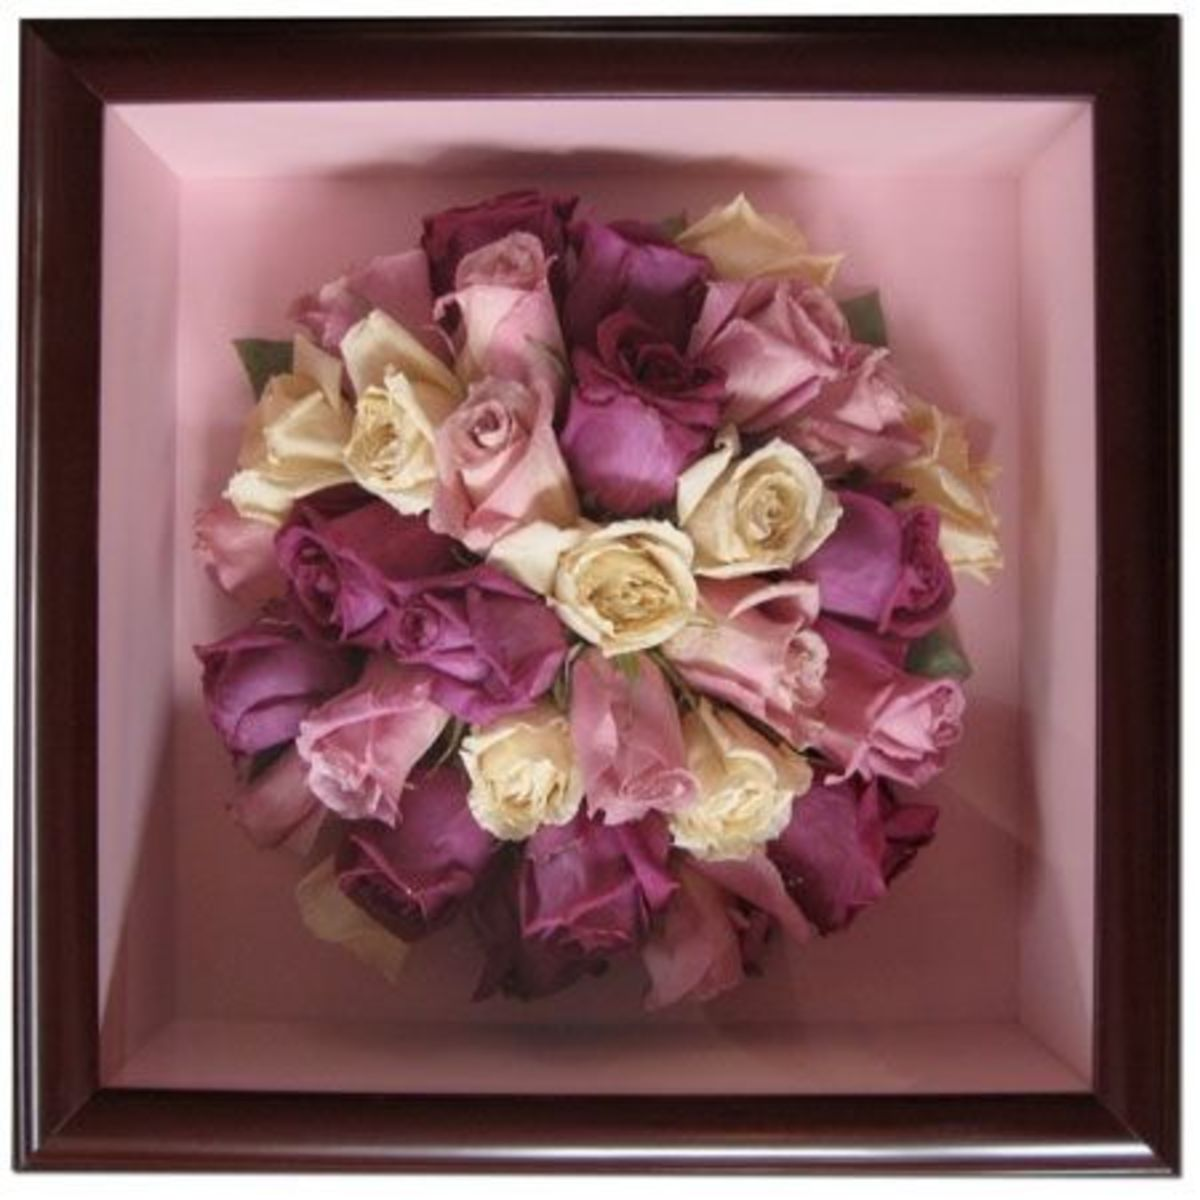 Freeze dried rose bouquet.